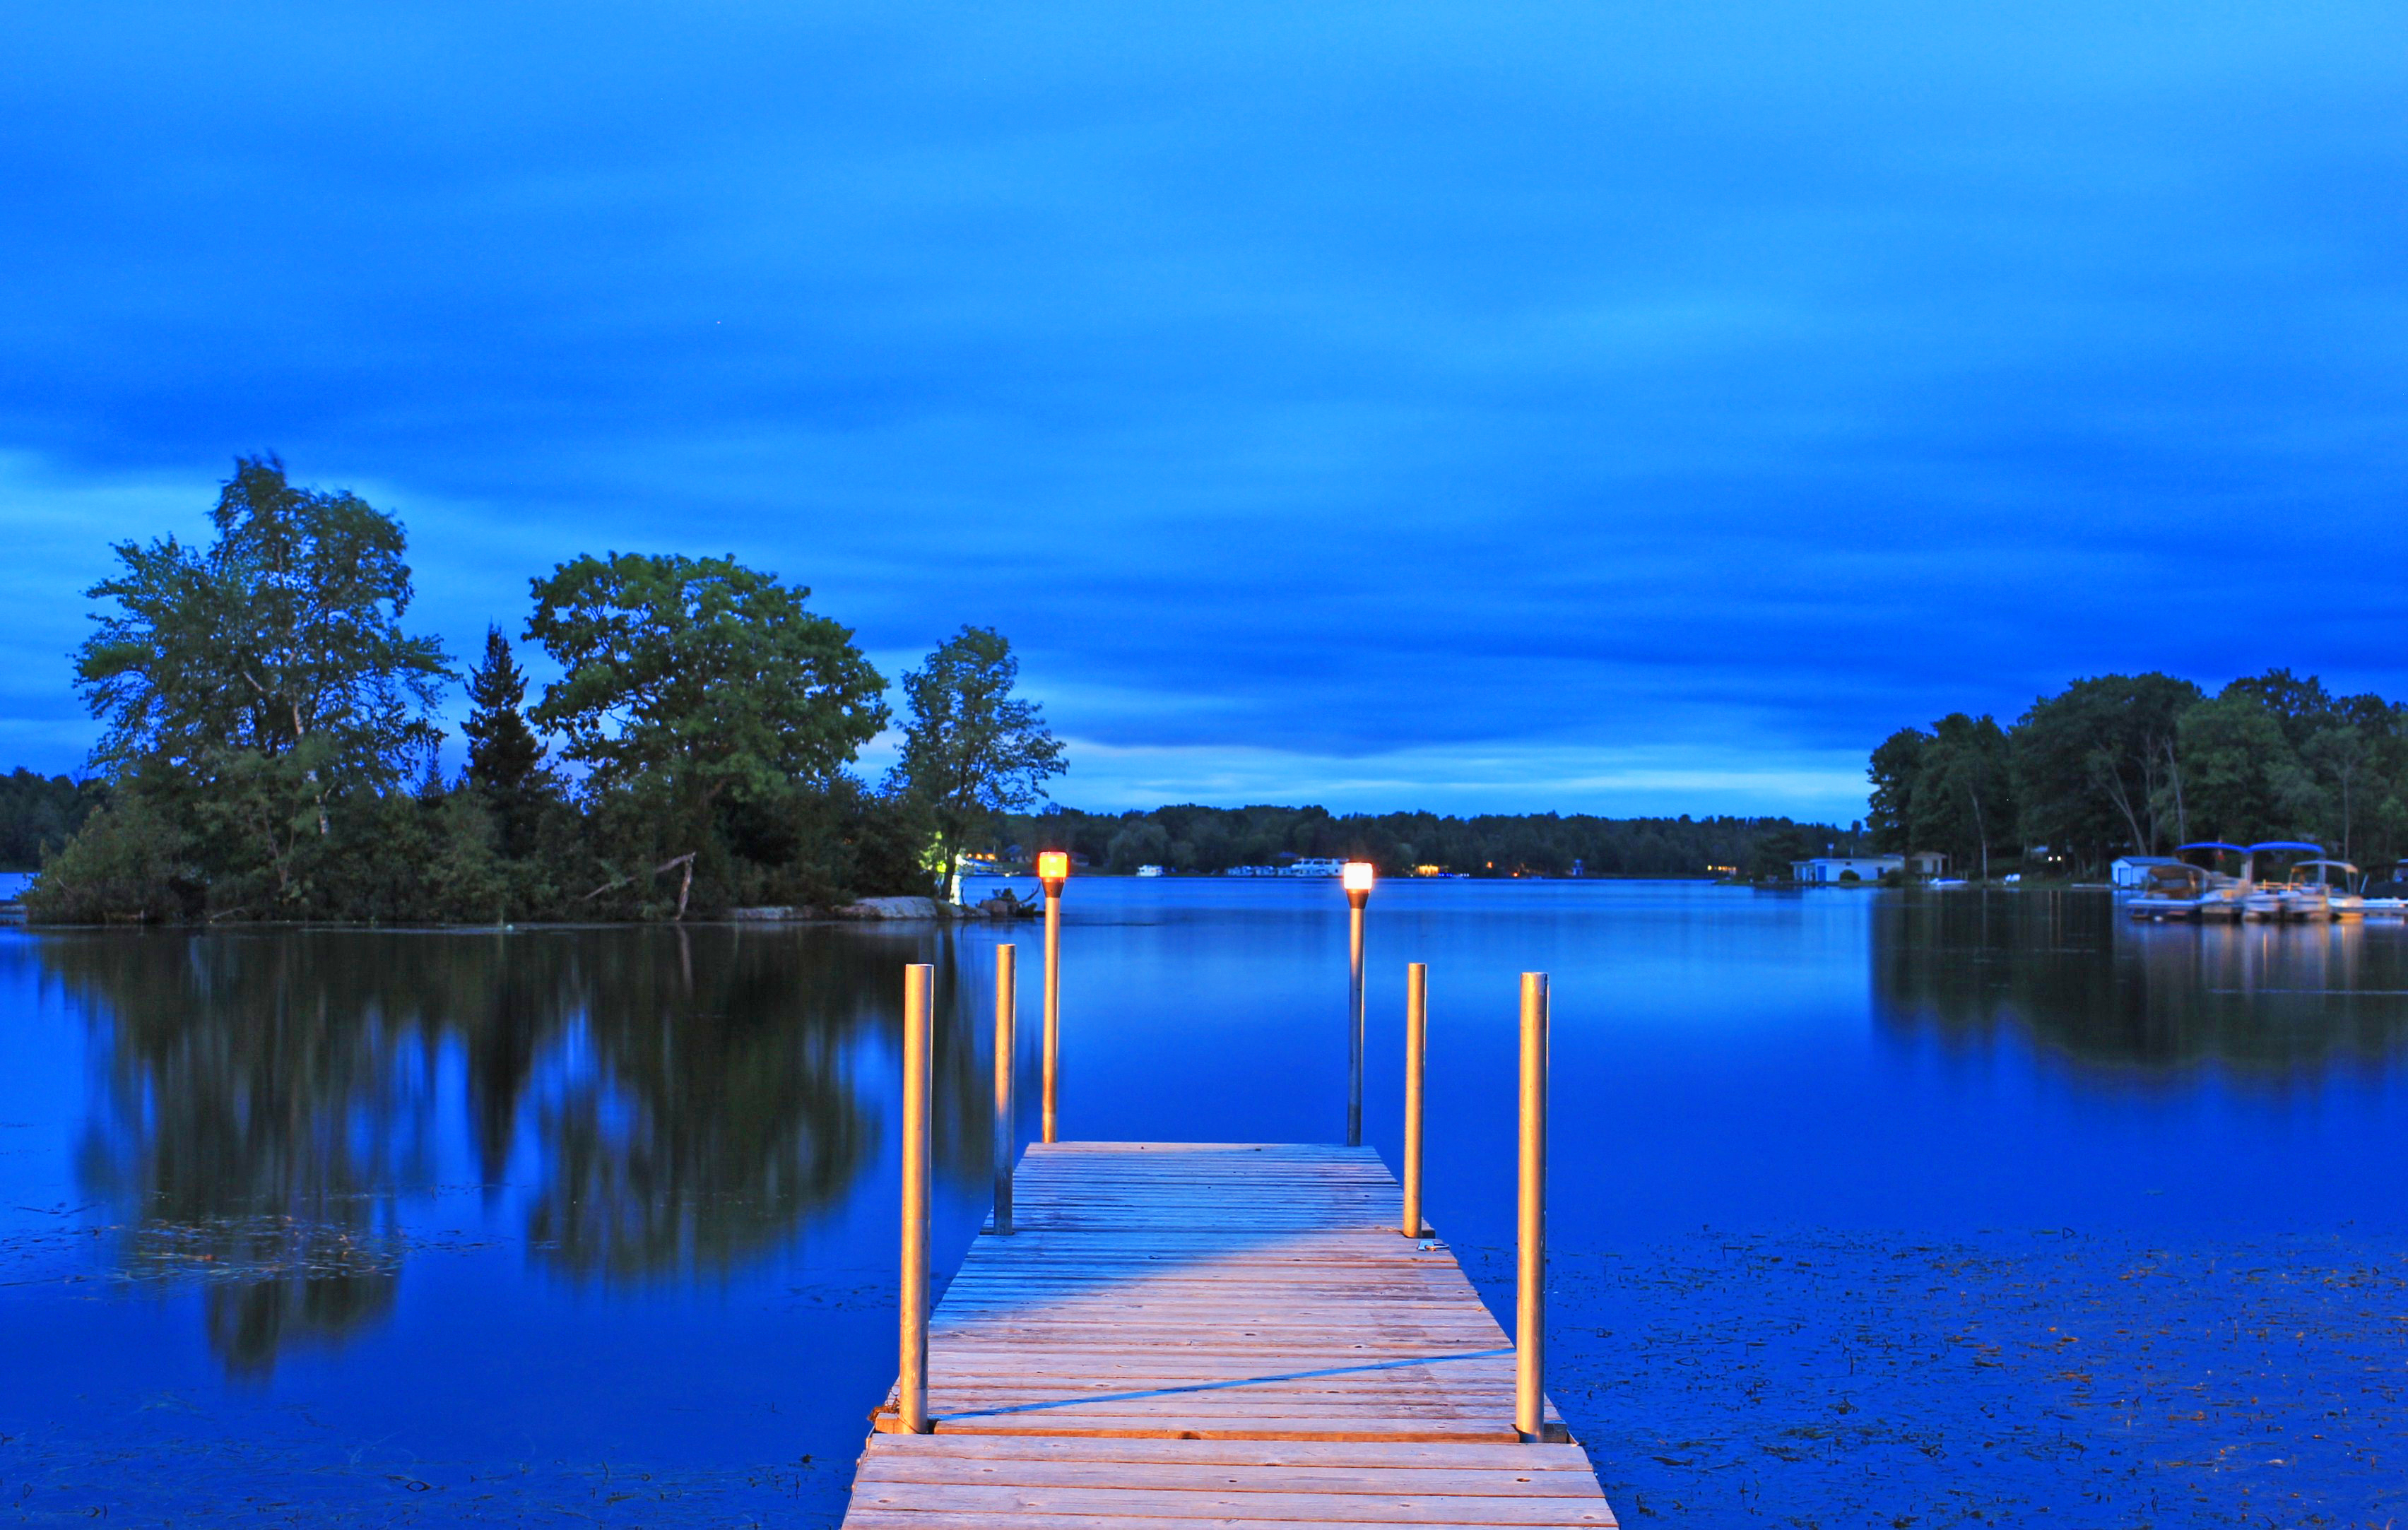 pigeon lake bobcaygeon ontario metro photo challenge